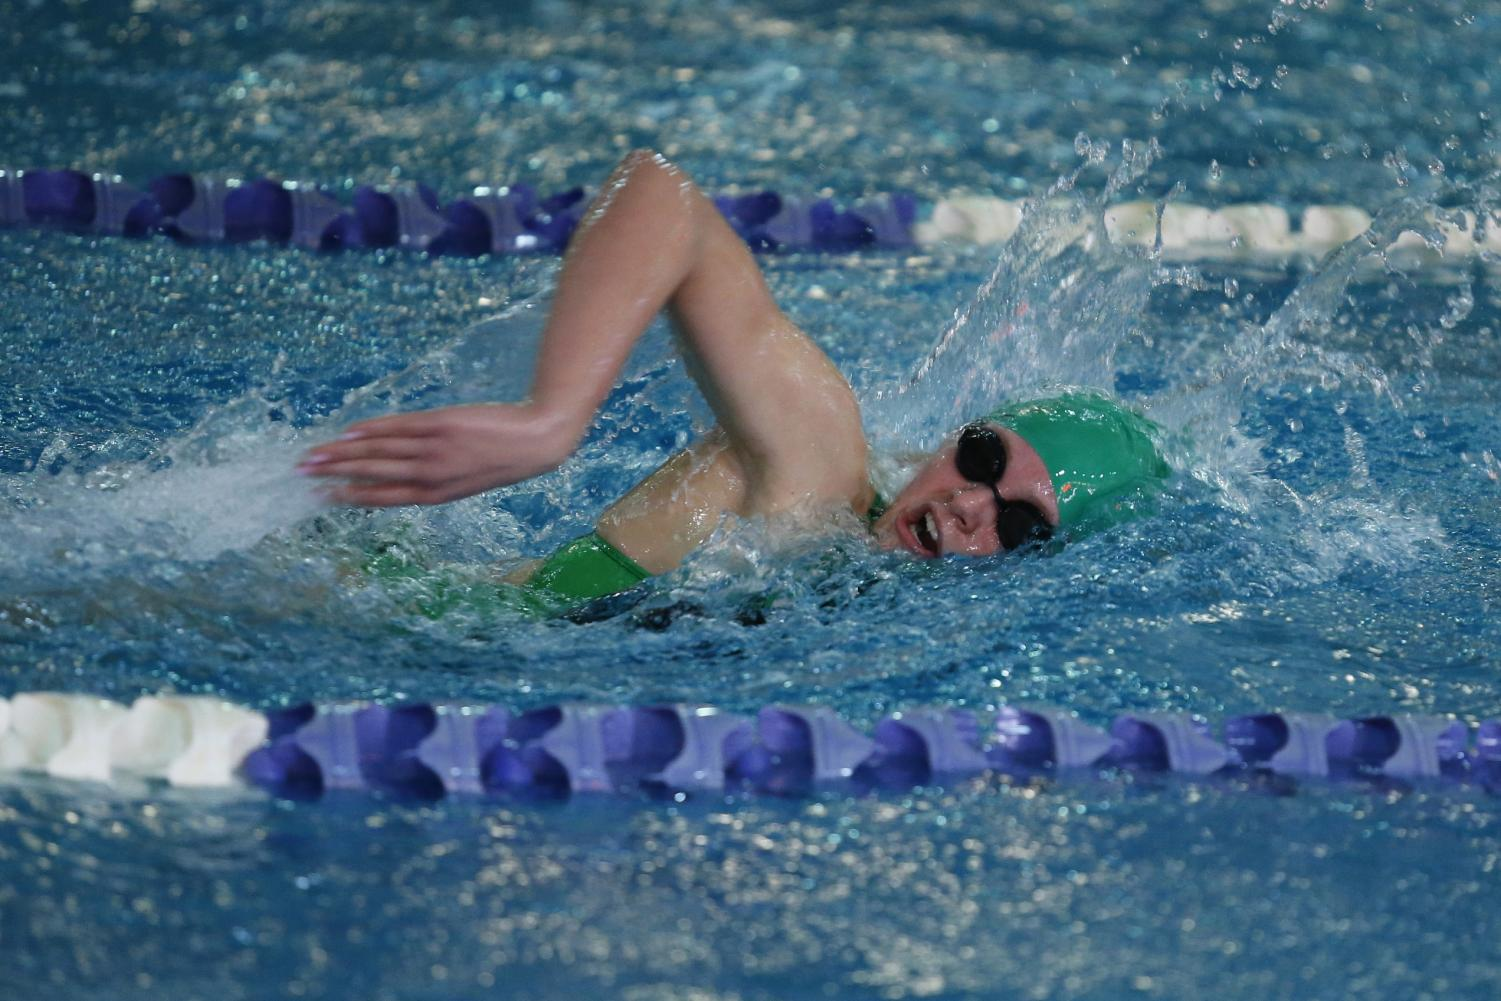 Sophomore Molly Benson takes a breath during the freestyle. Photo courtesy of Lifetouch Studios